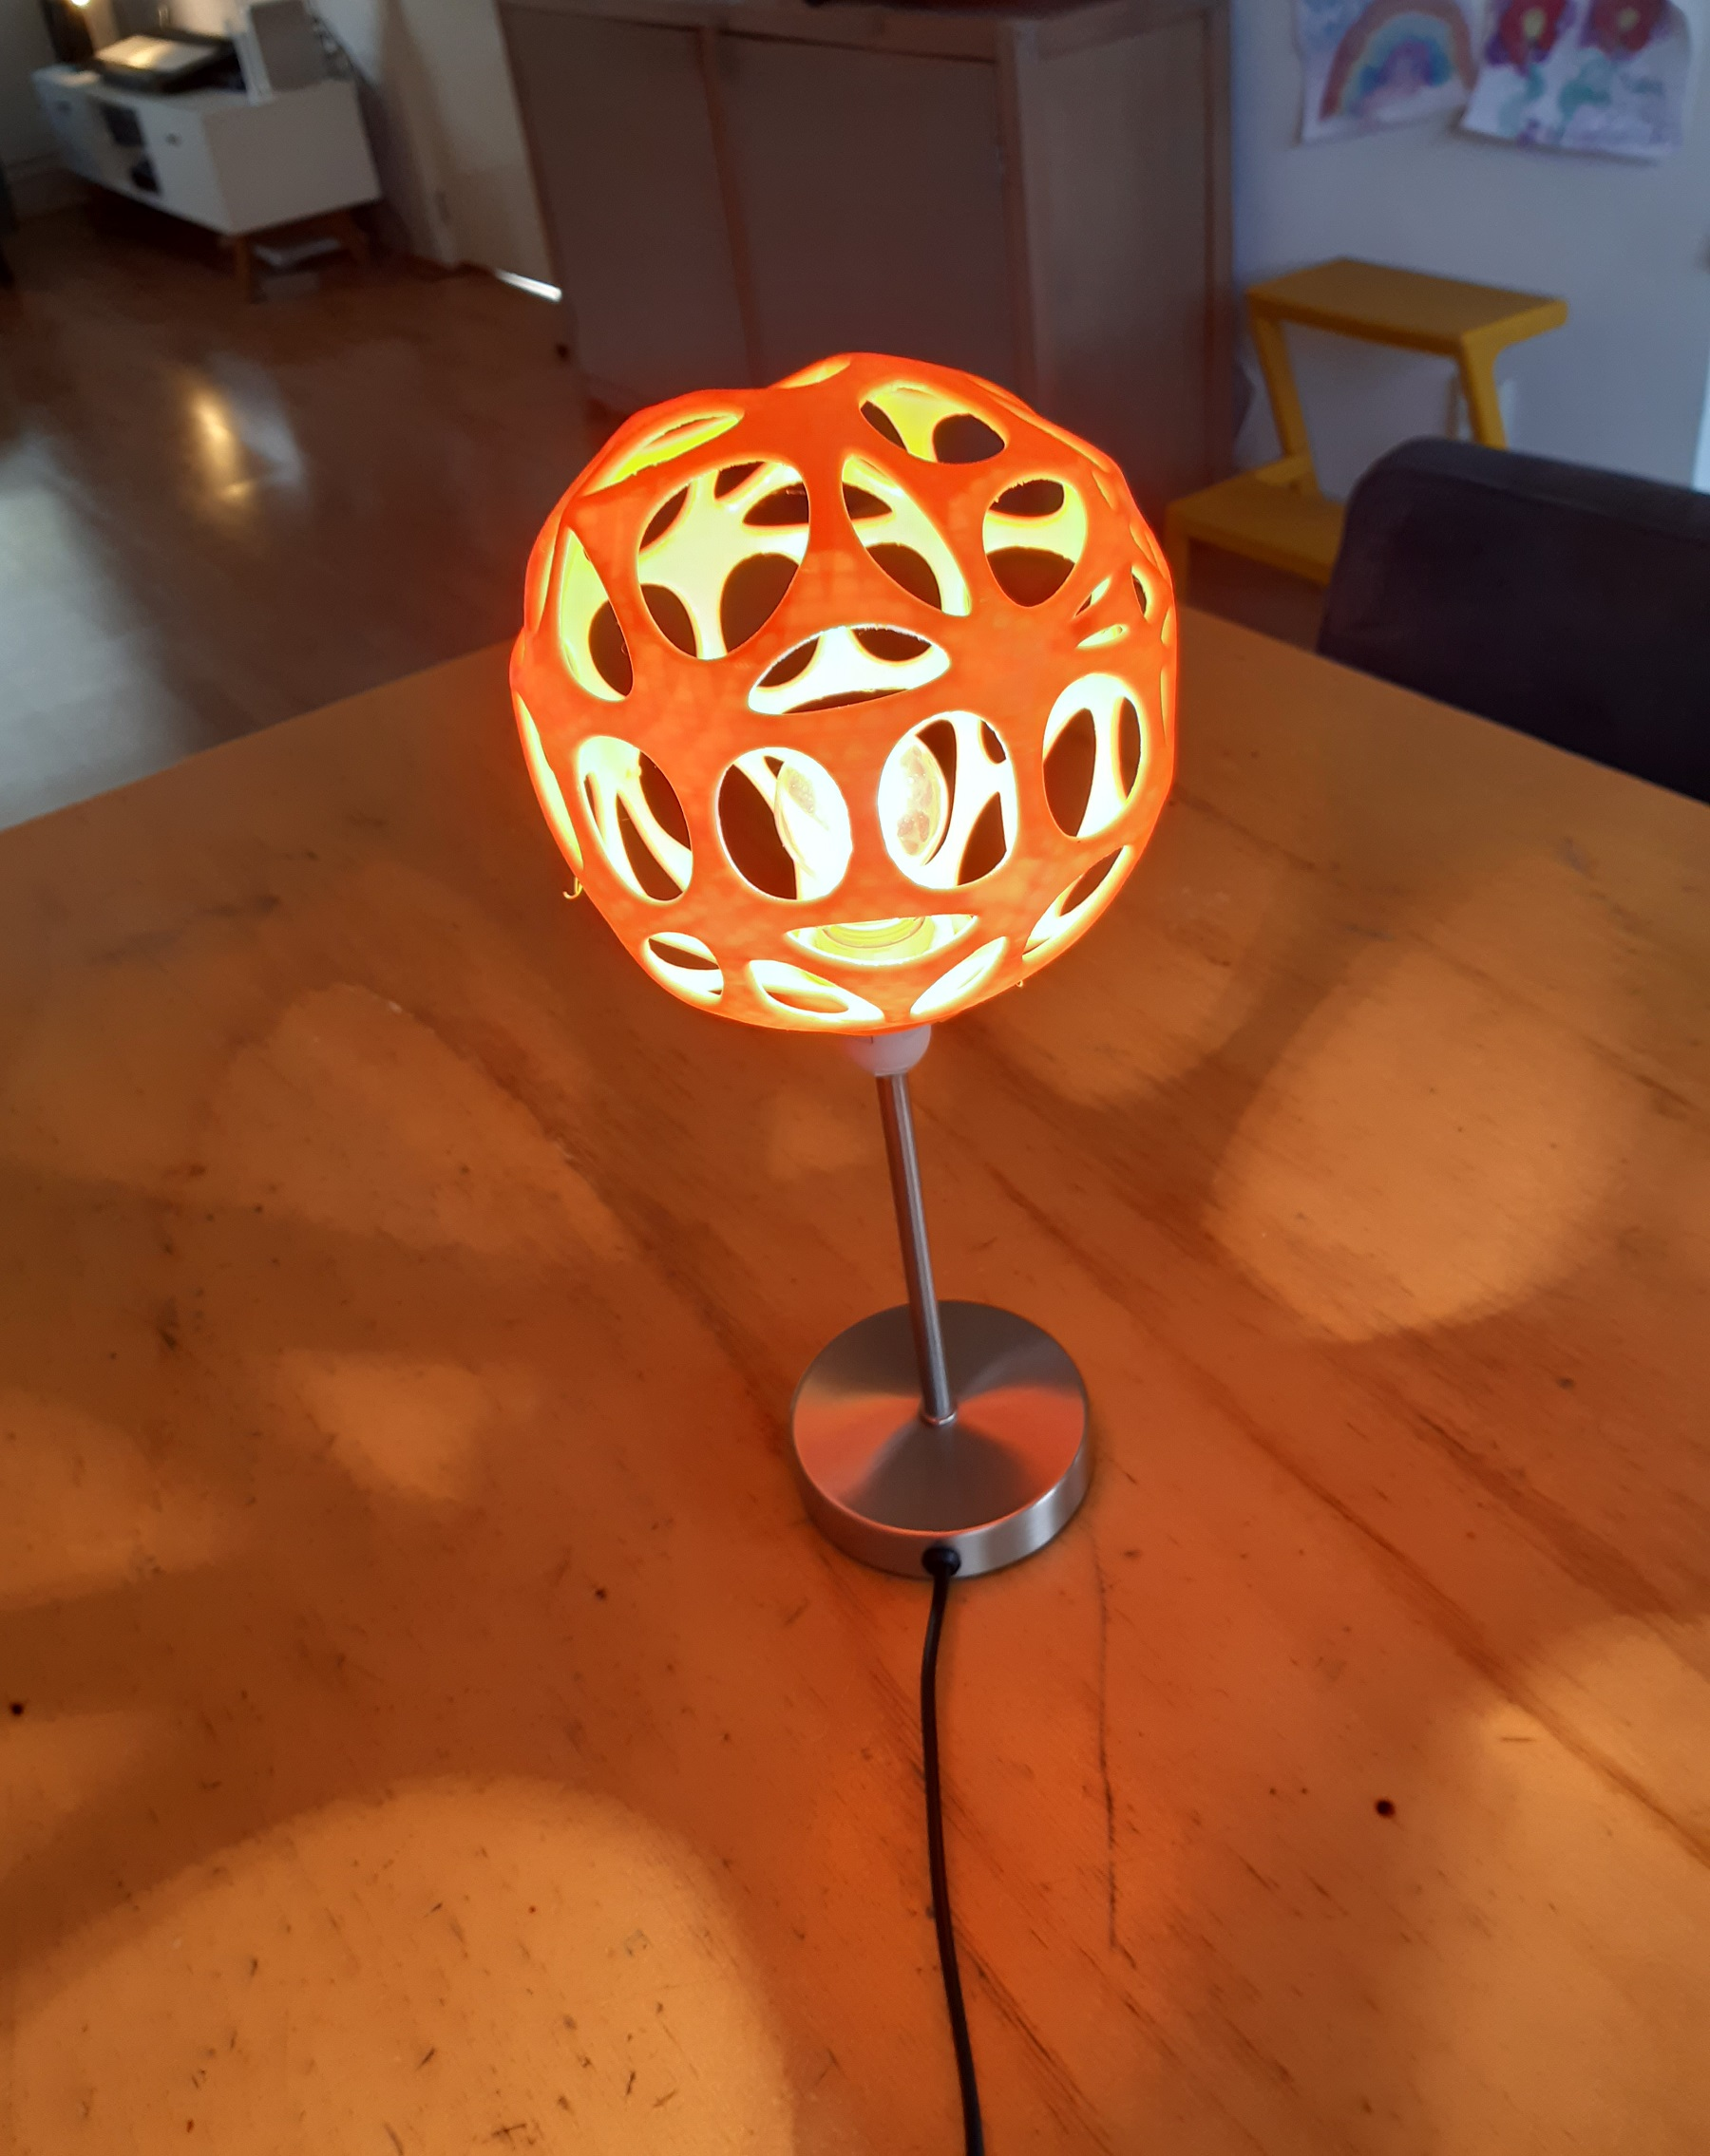 My 70s table lamp preview image 4